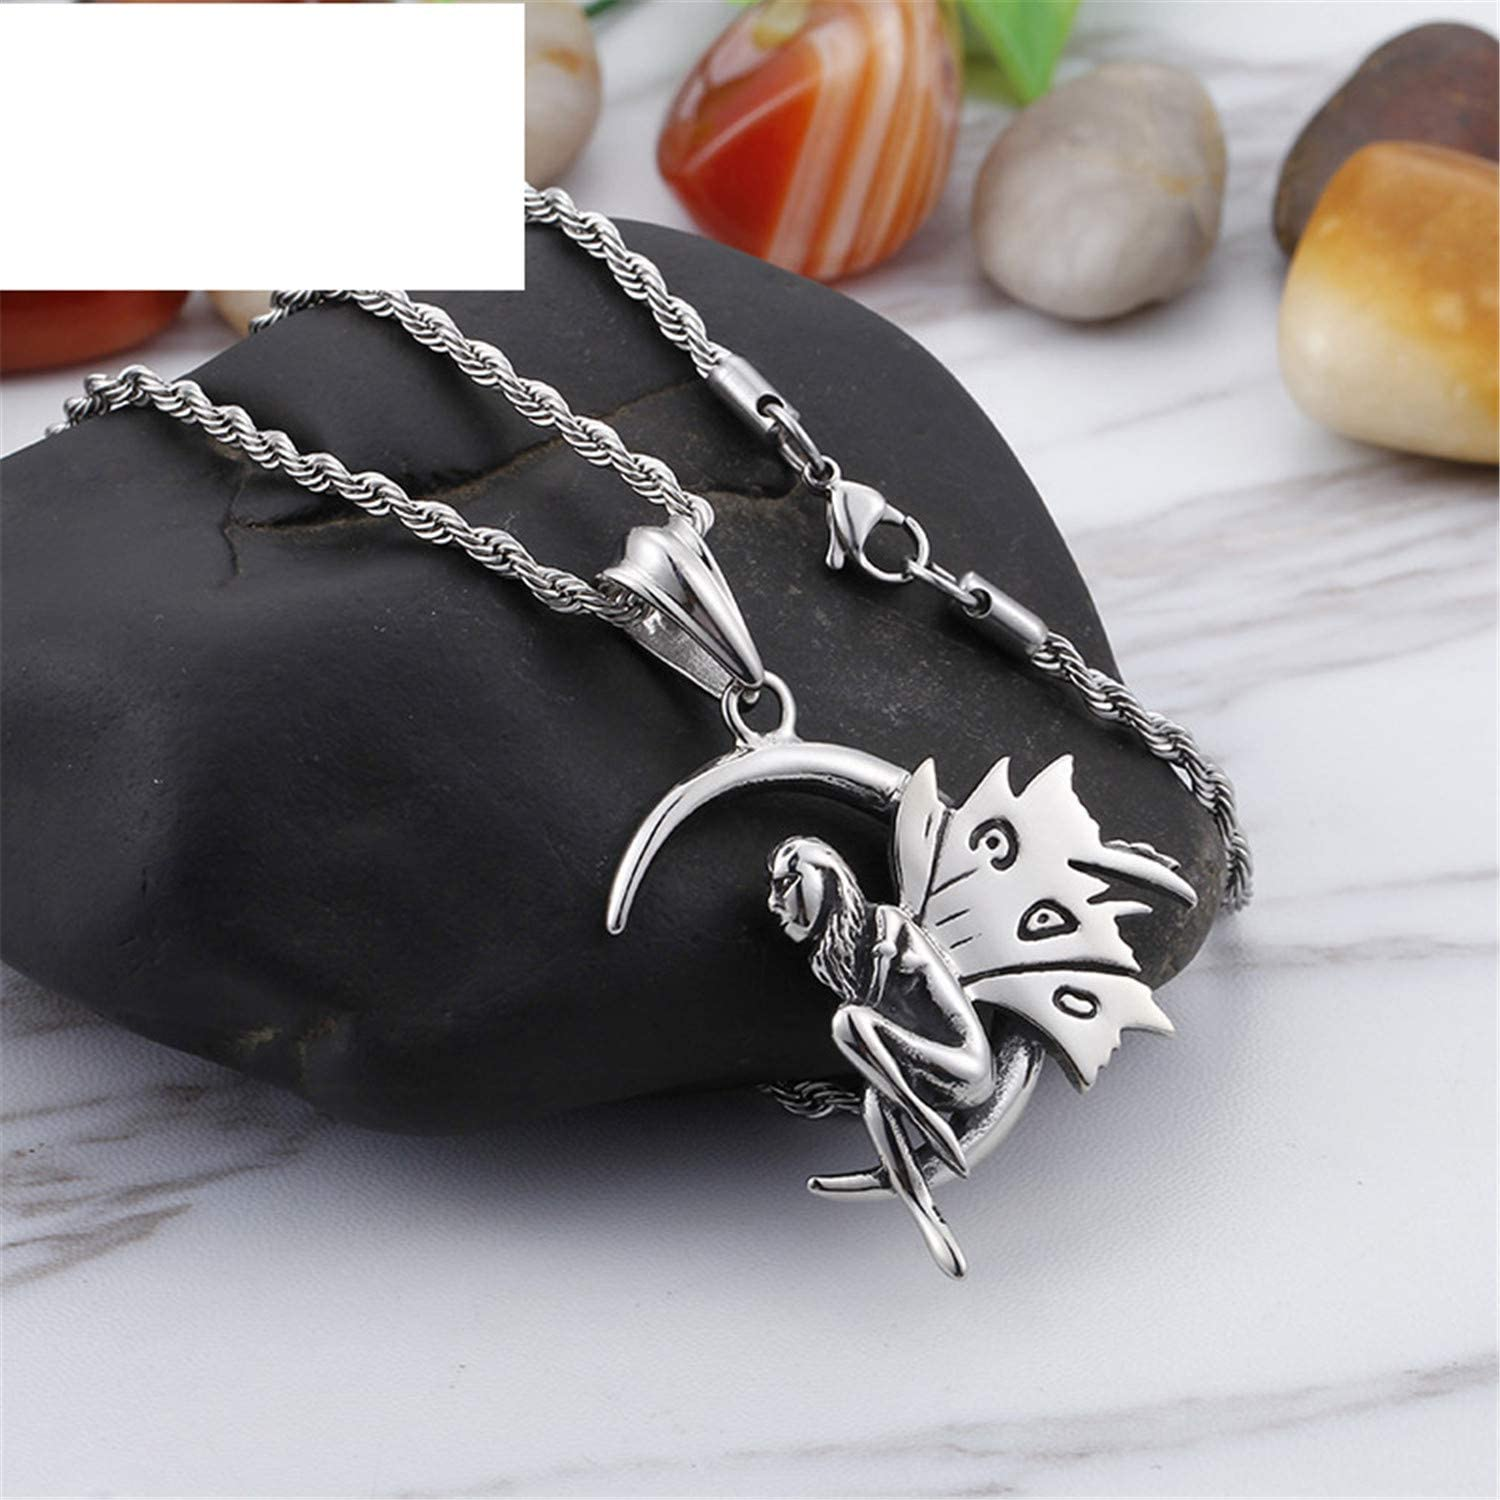 WANGSHUIJUN Stainless Steel Angle Wings Pendant Necklaces for Men Women Girl Butterfly Fairy Elves CharmGifts